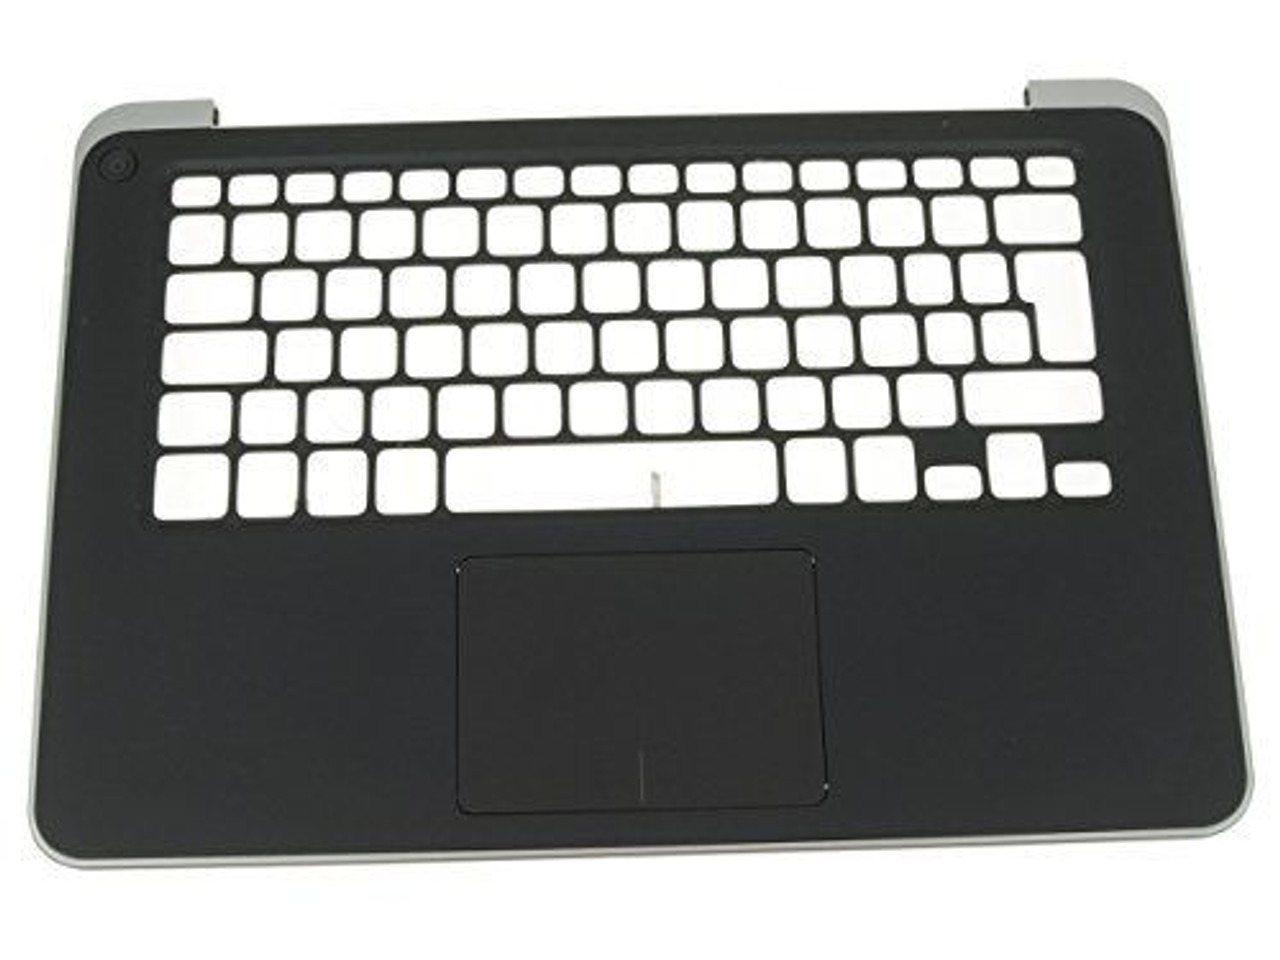 Dell XPS L421x EMEA Palmrest Touchpad Assembly -  R8N20